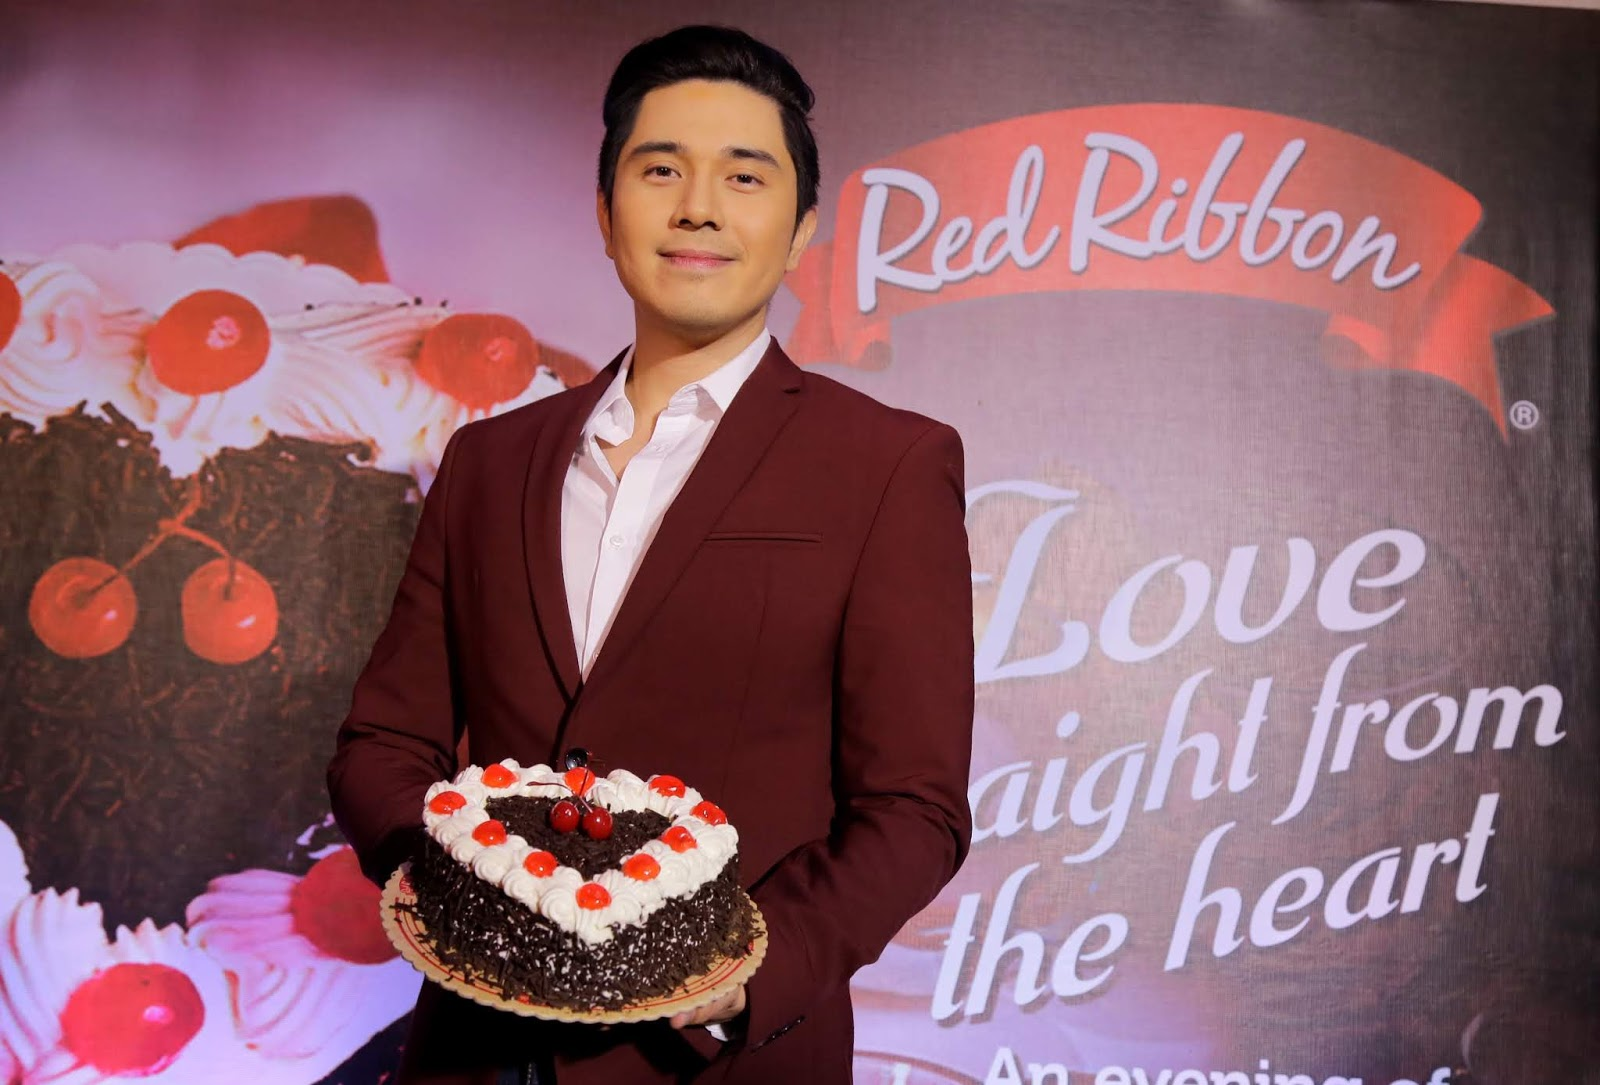 Couples can share love straight from the heart with the Red Ribbon  Valentine Black Forest Cake daabbdb3e98b